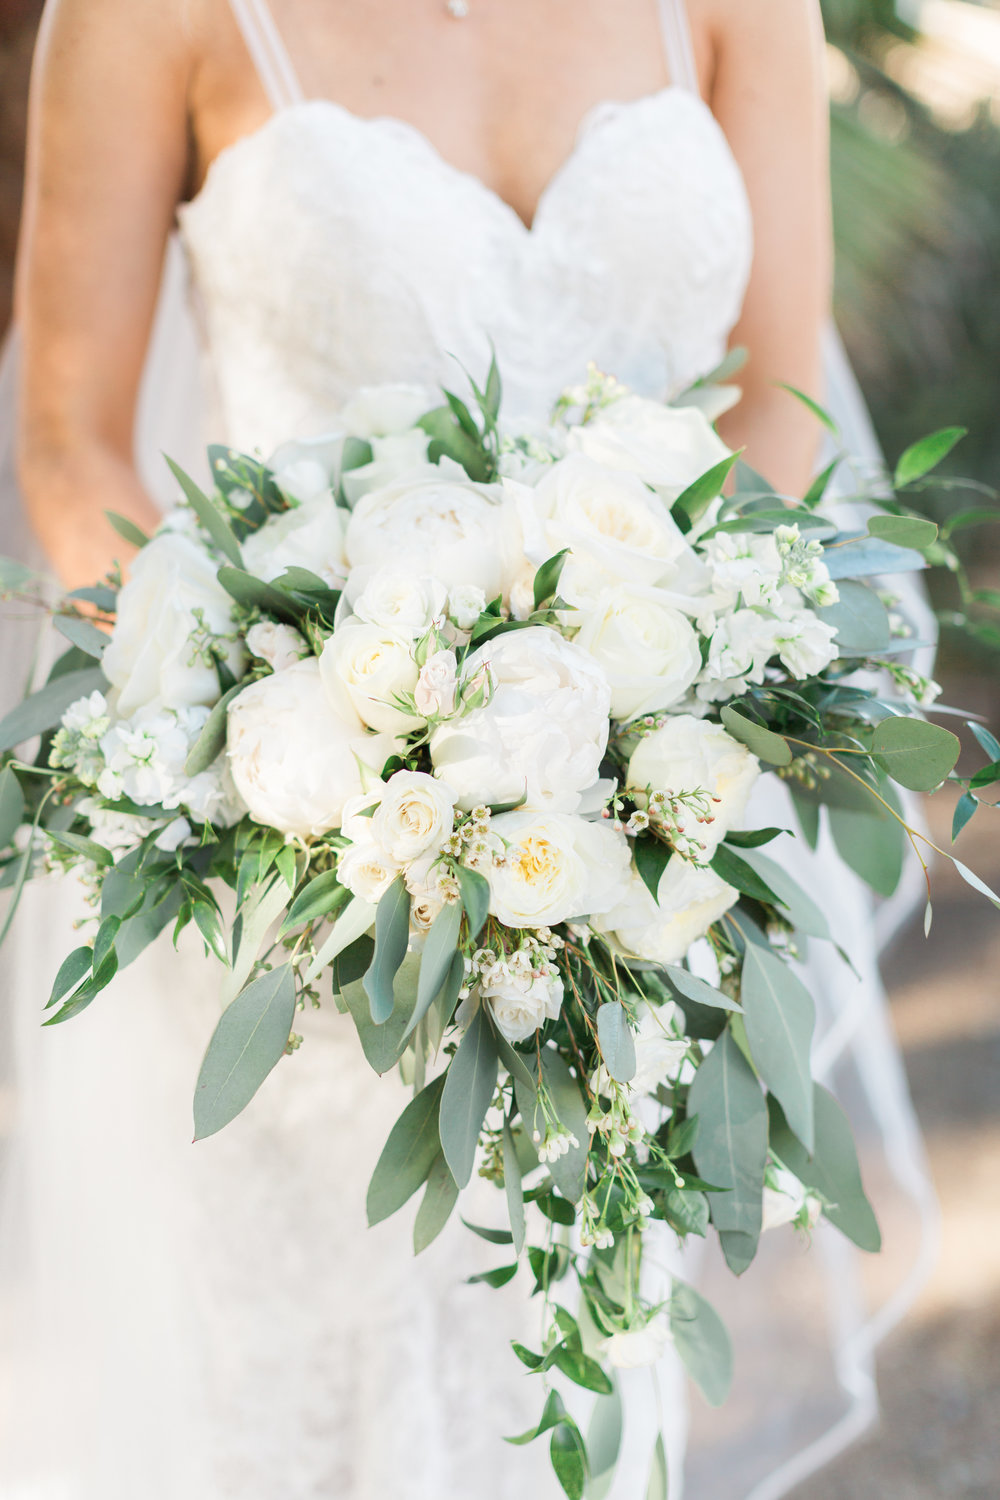 White and Greenery Heart Shaped Bridal Bouquet